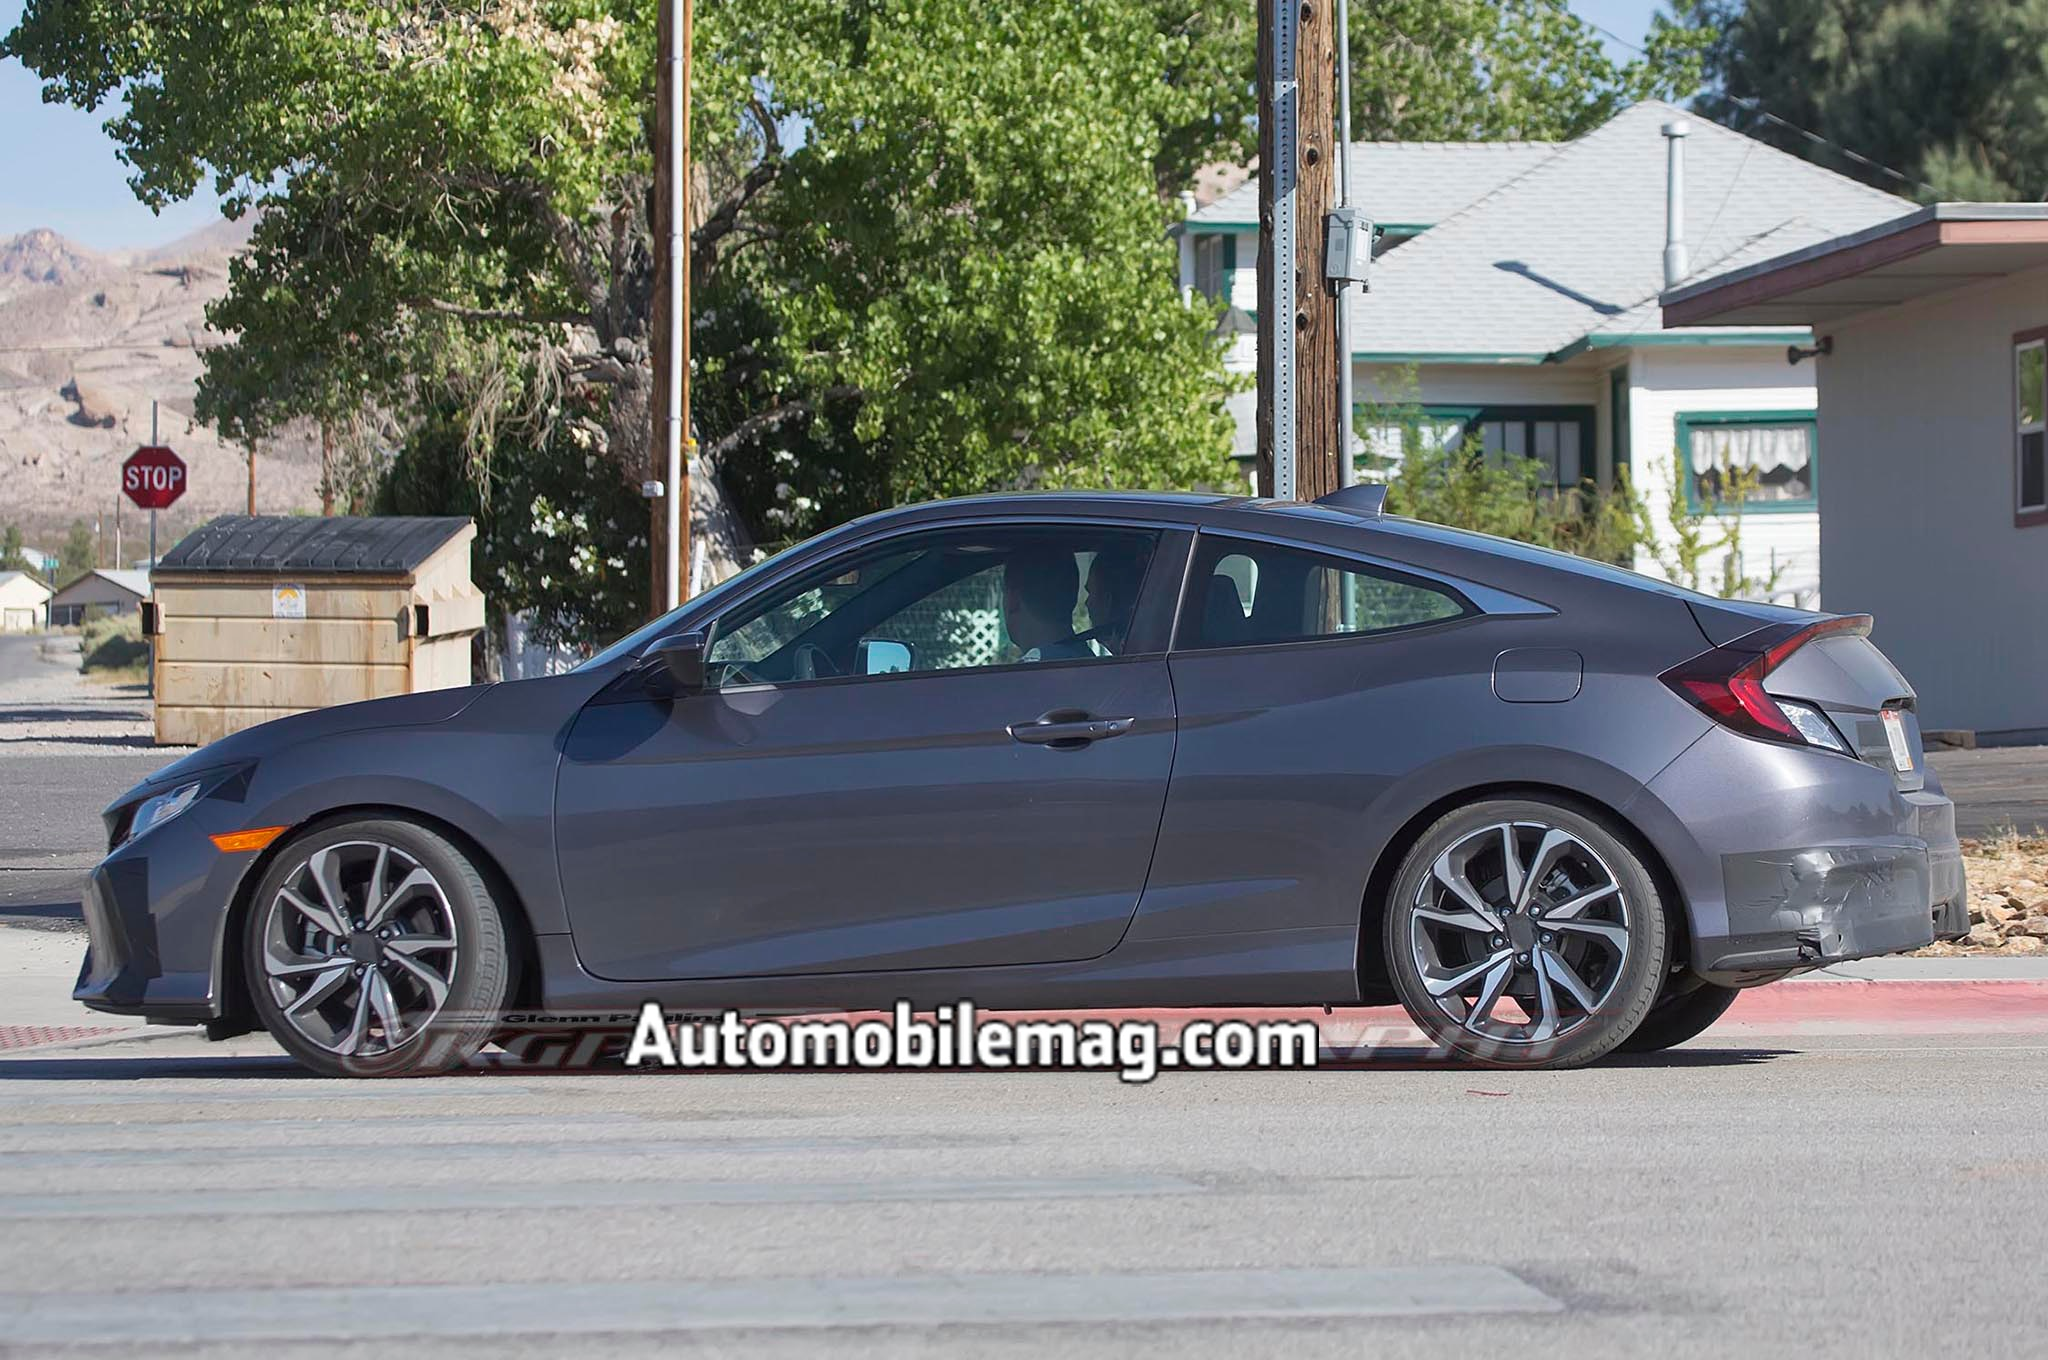 Expect the 2017 Honda Civic Si Coupe to make its official debut at ...